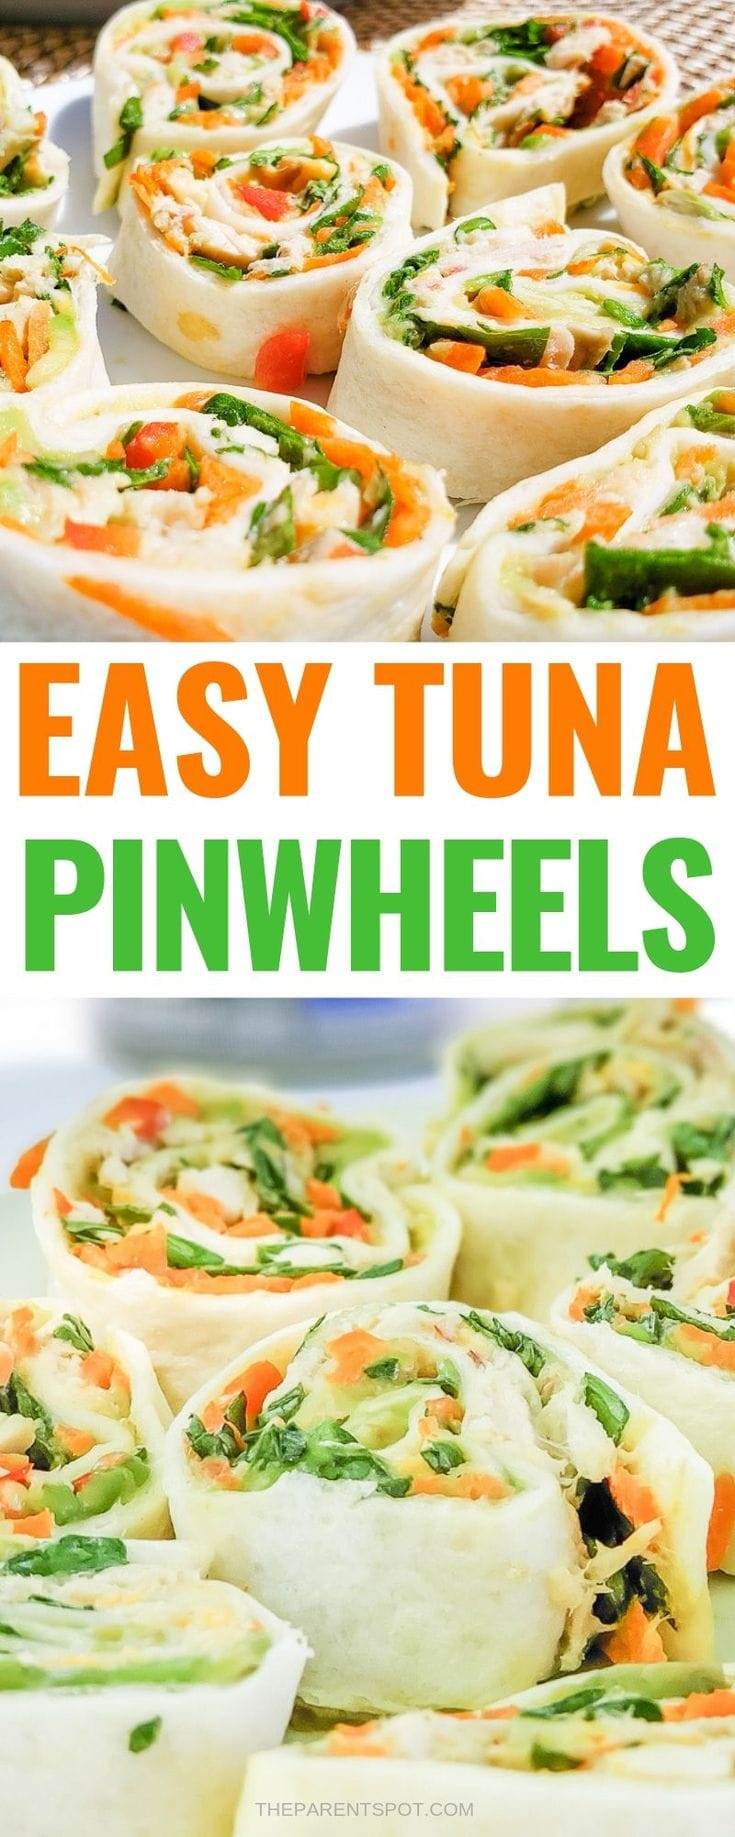 easy tuna pinwheels packed with fresh veggies